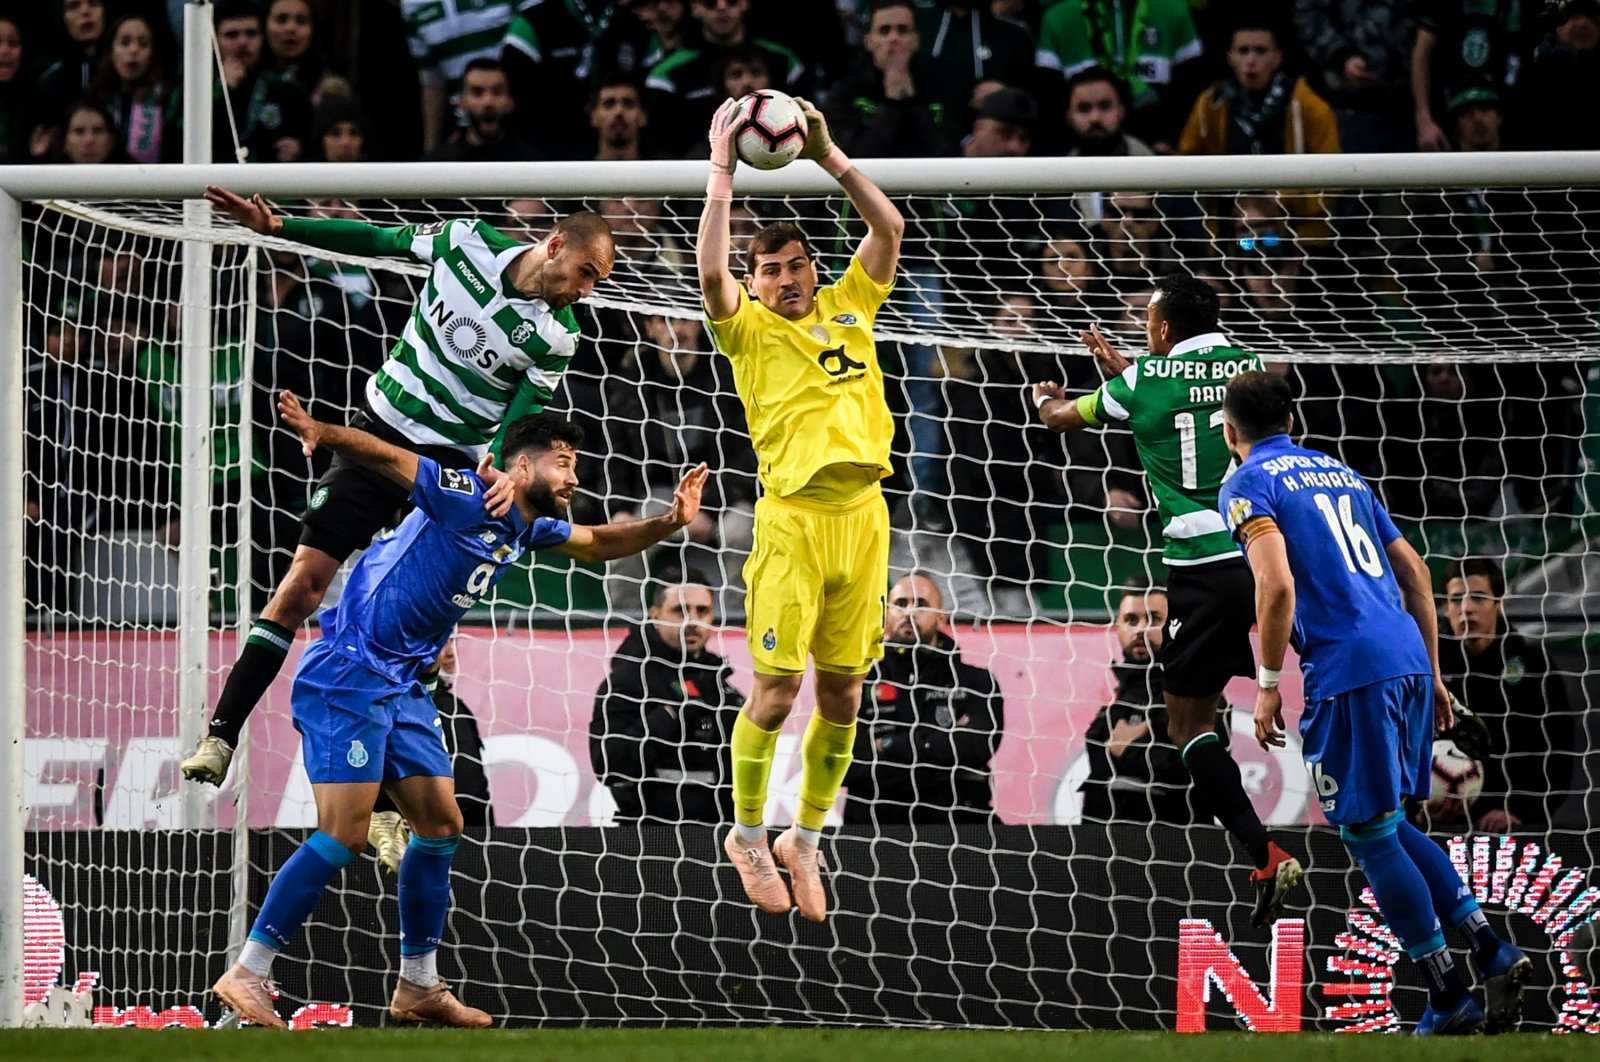 Porto's Spanish goalkeeper Iker Casillas (C) grabs the ball during the Portuguese League football match between Sporting CP and FC Porto at the Jose Alvalade stadium in Lisbon, Portugal on Jan. 12, 2019. (AFP Photo)